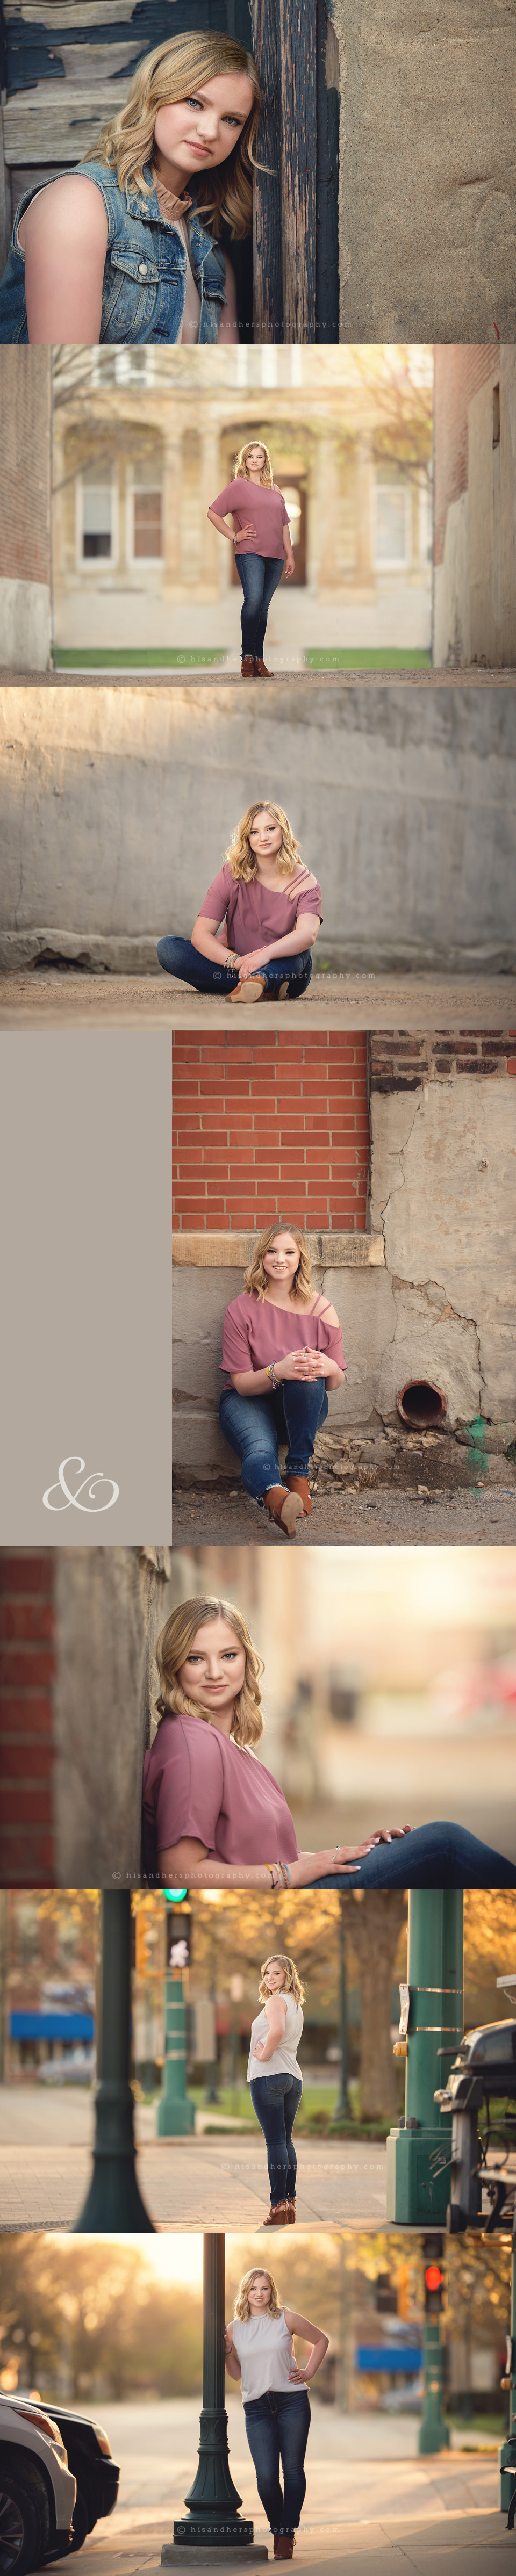 iowa senior pictures senior portraits photographer des moines high school seniors class of 2020 2021 2022